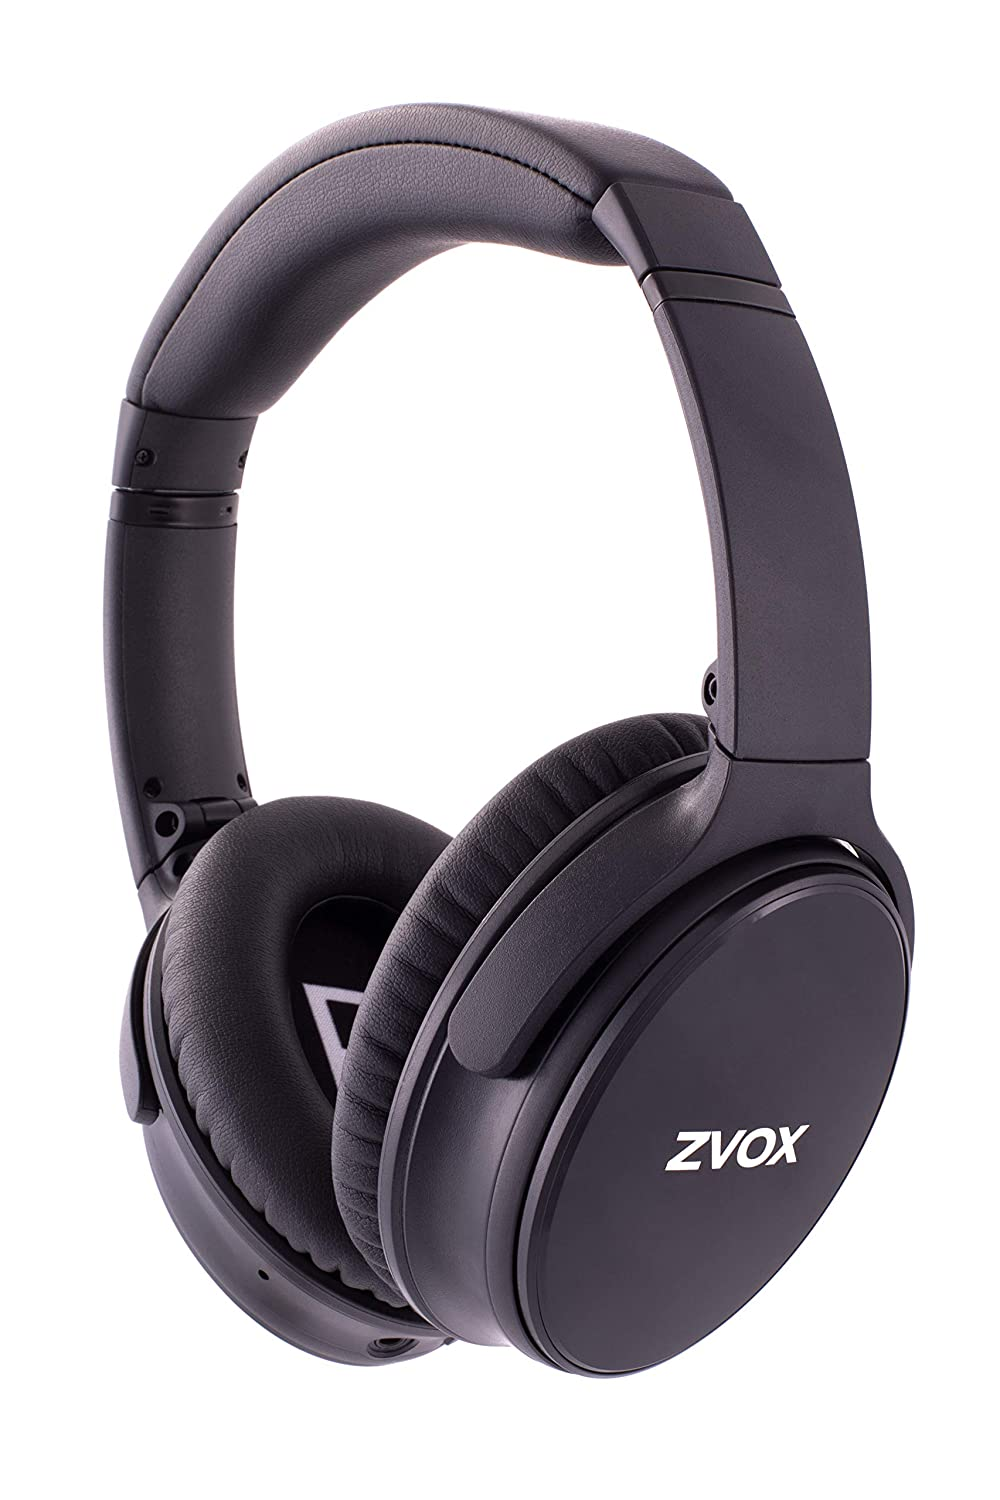 ZVOX AccuVoice AV50 Noise Cancelling Headphones (Black)